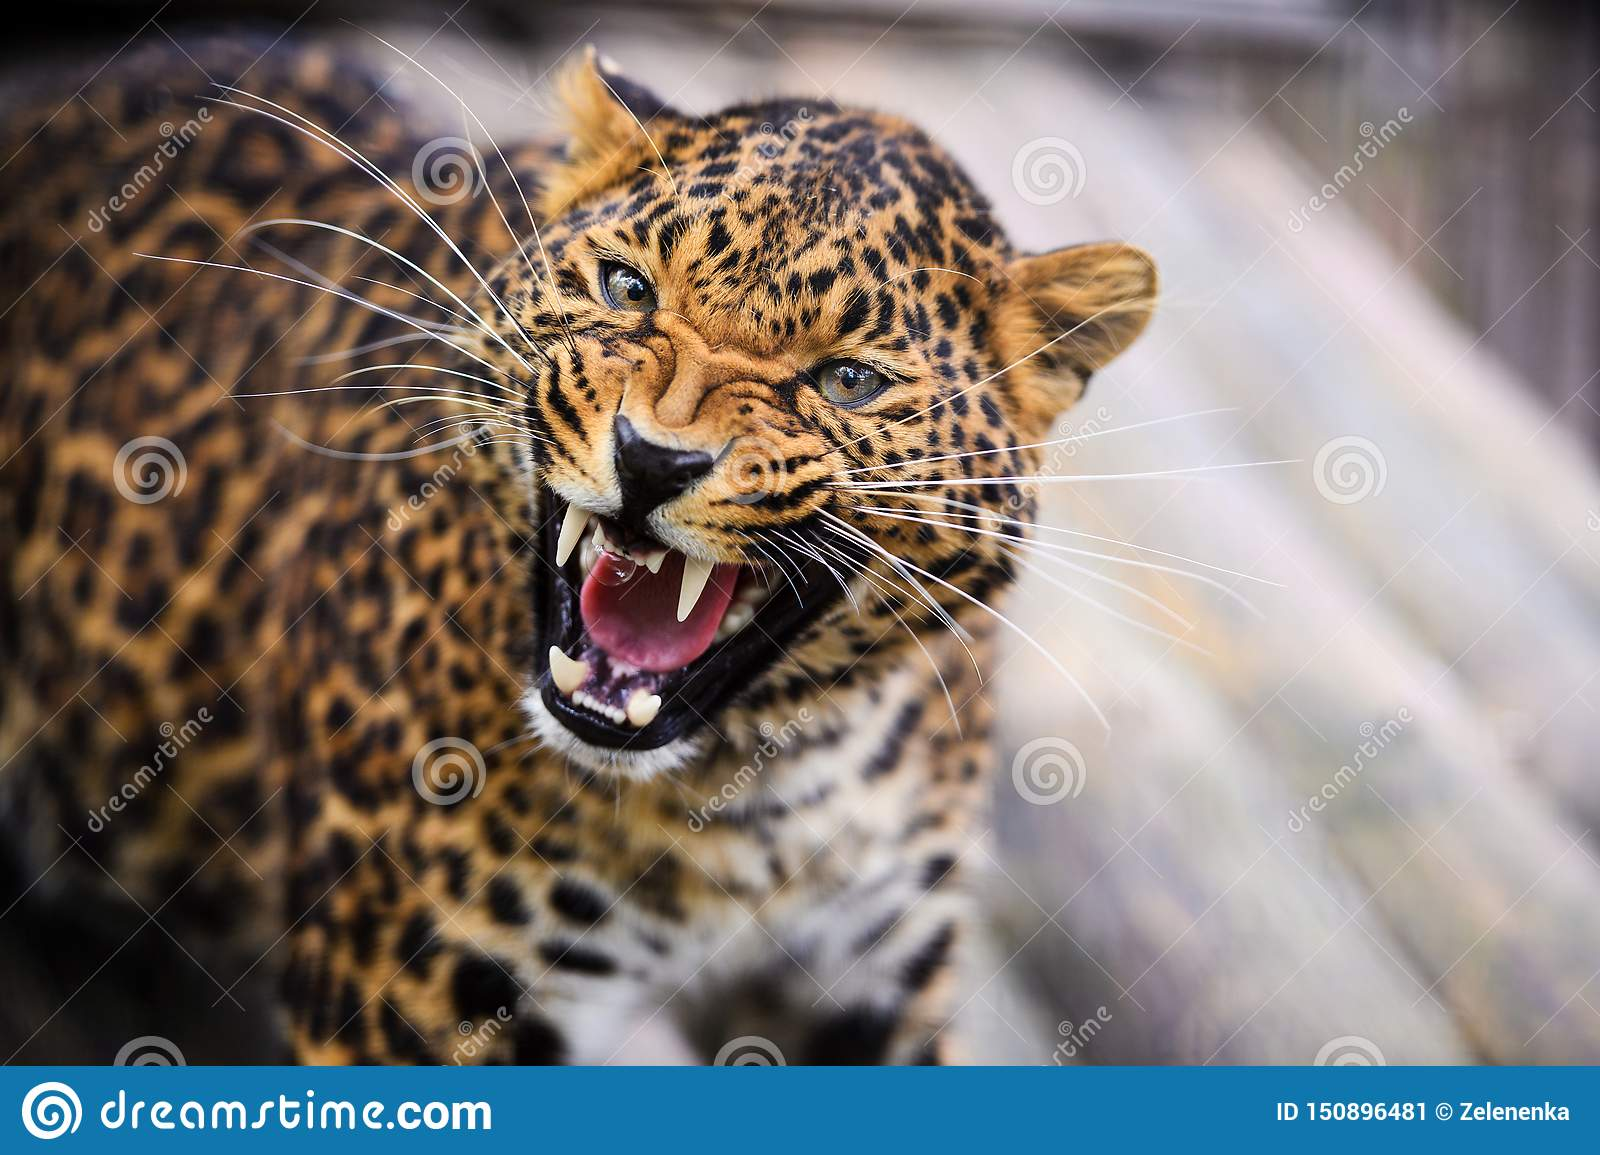 Portrait of a beautiful leopard roaring in front of the camera